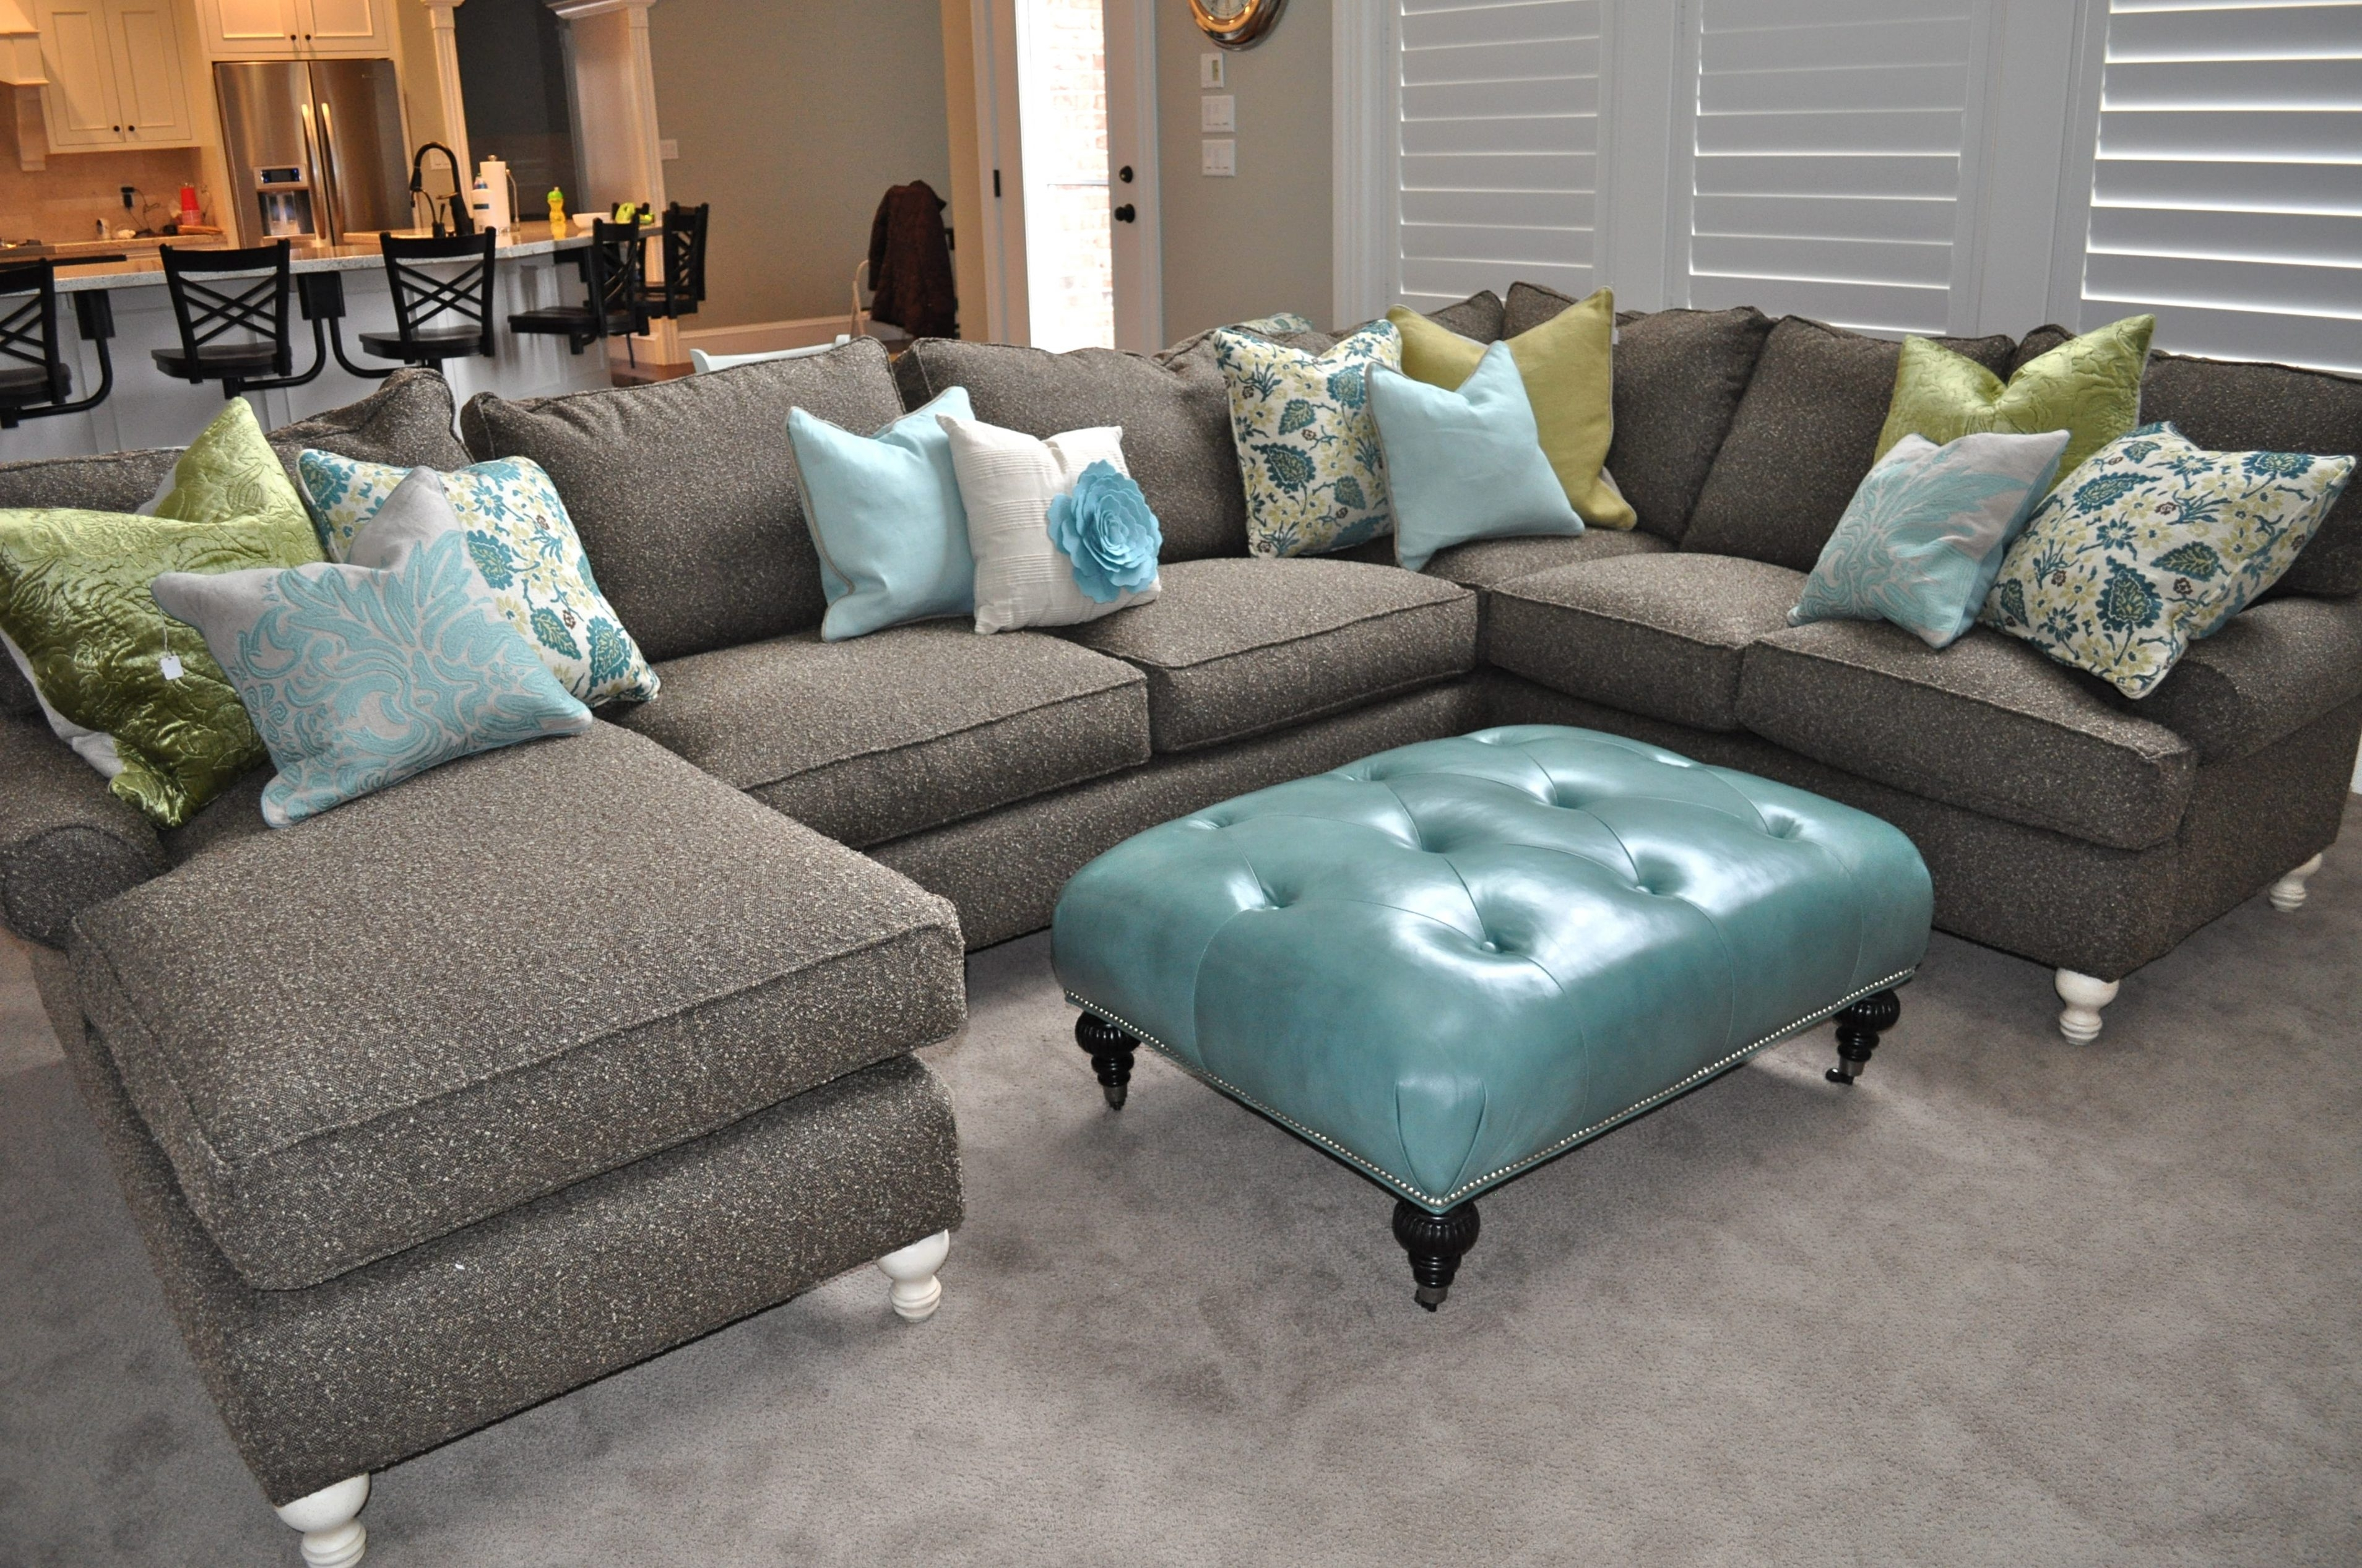 Down Filled Sectional Sofa Good Ideas #3 Epic Down Filled Sectional With Down Filled Sectional Sofas (Image 5 of 10)